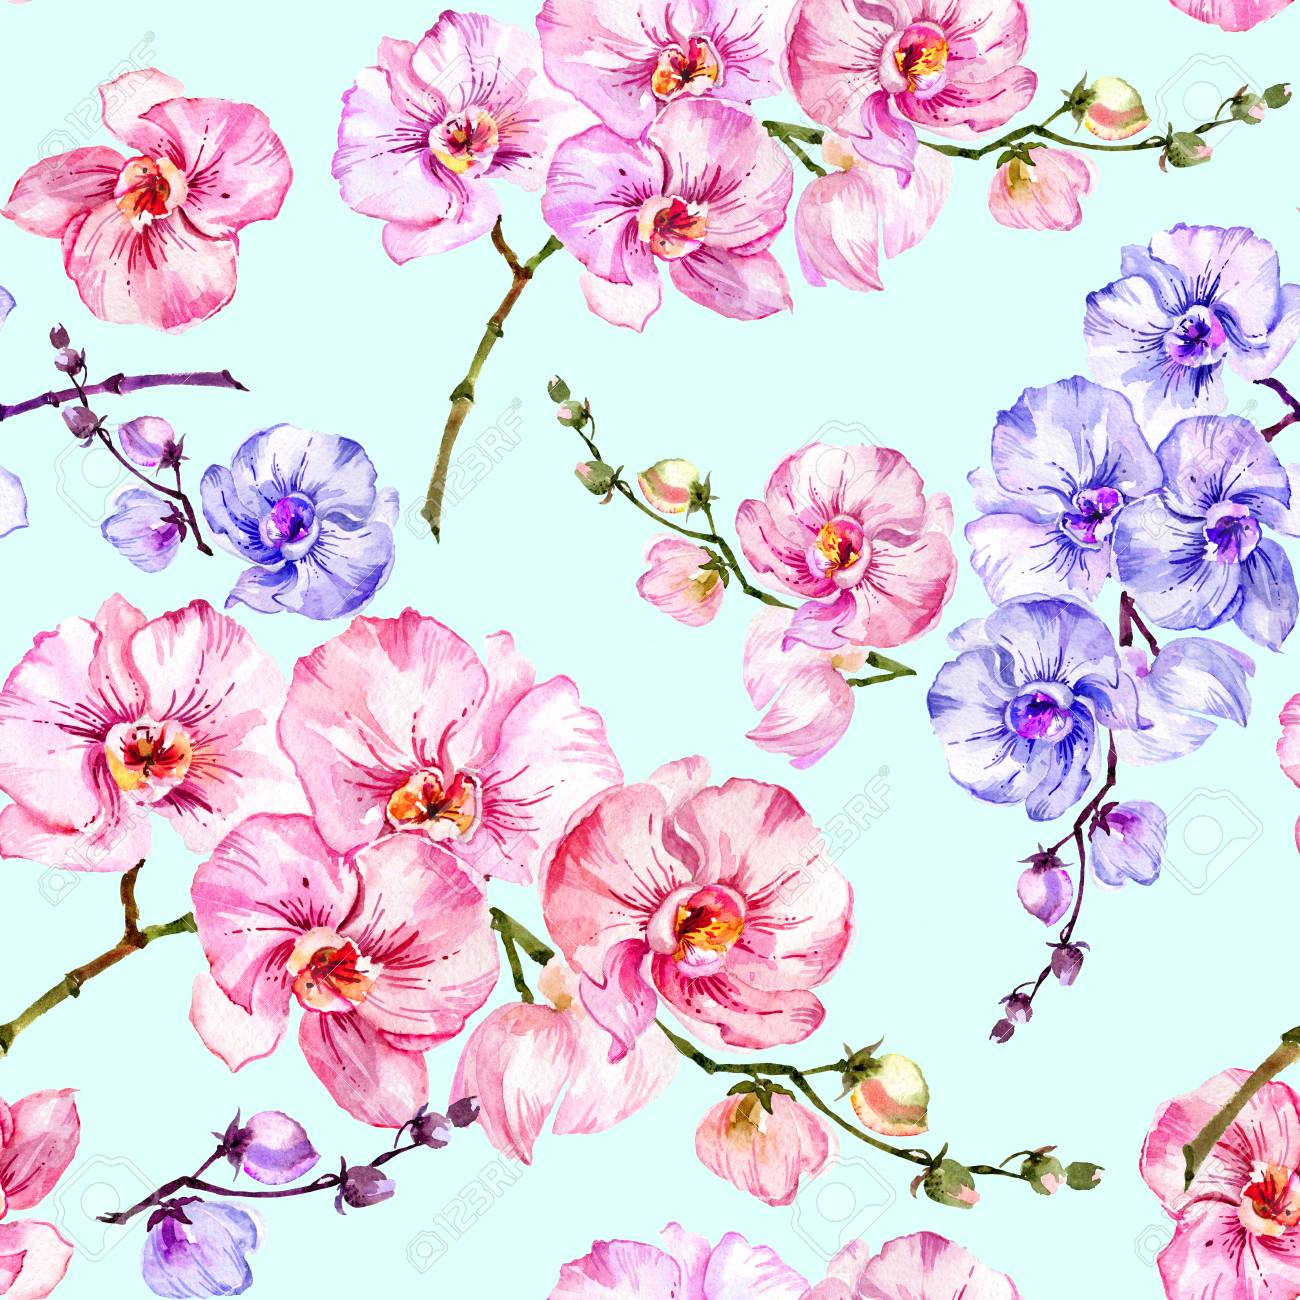 Blue And Pink Orchid Flowers On Light Blue Background Seamless